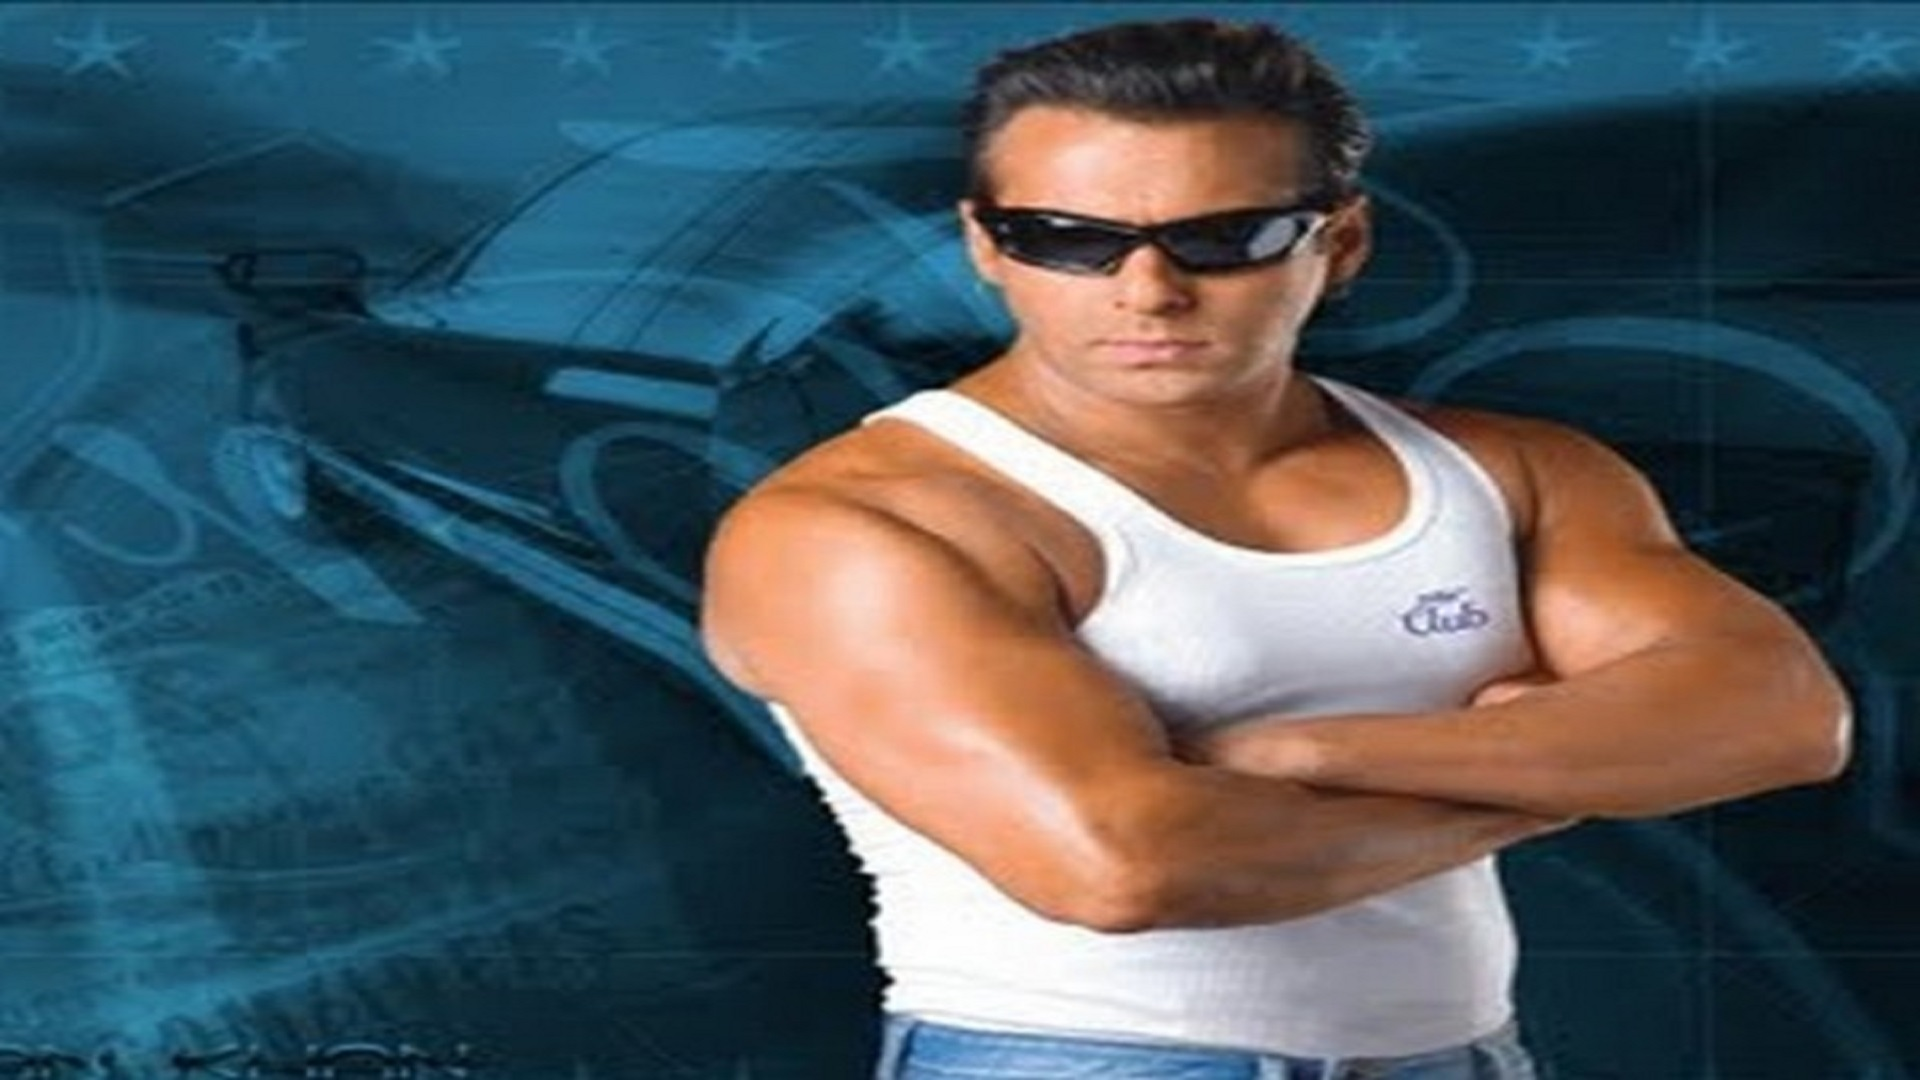 Wao Cool Look Wallpaper Of Salman Khan Latest Hd Free Hd Wallpaper